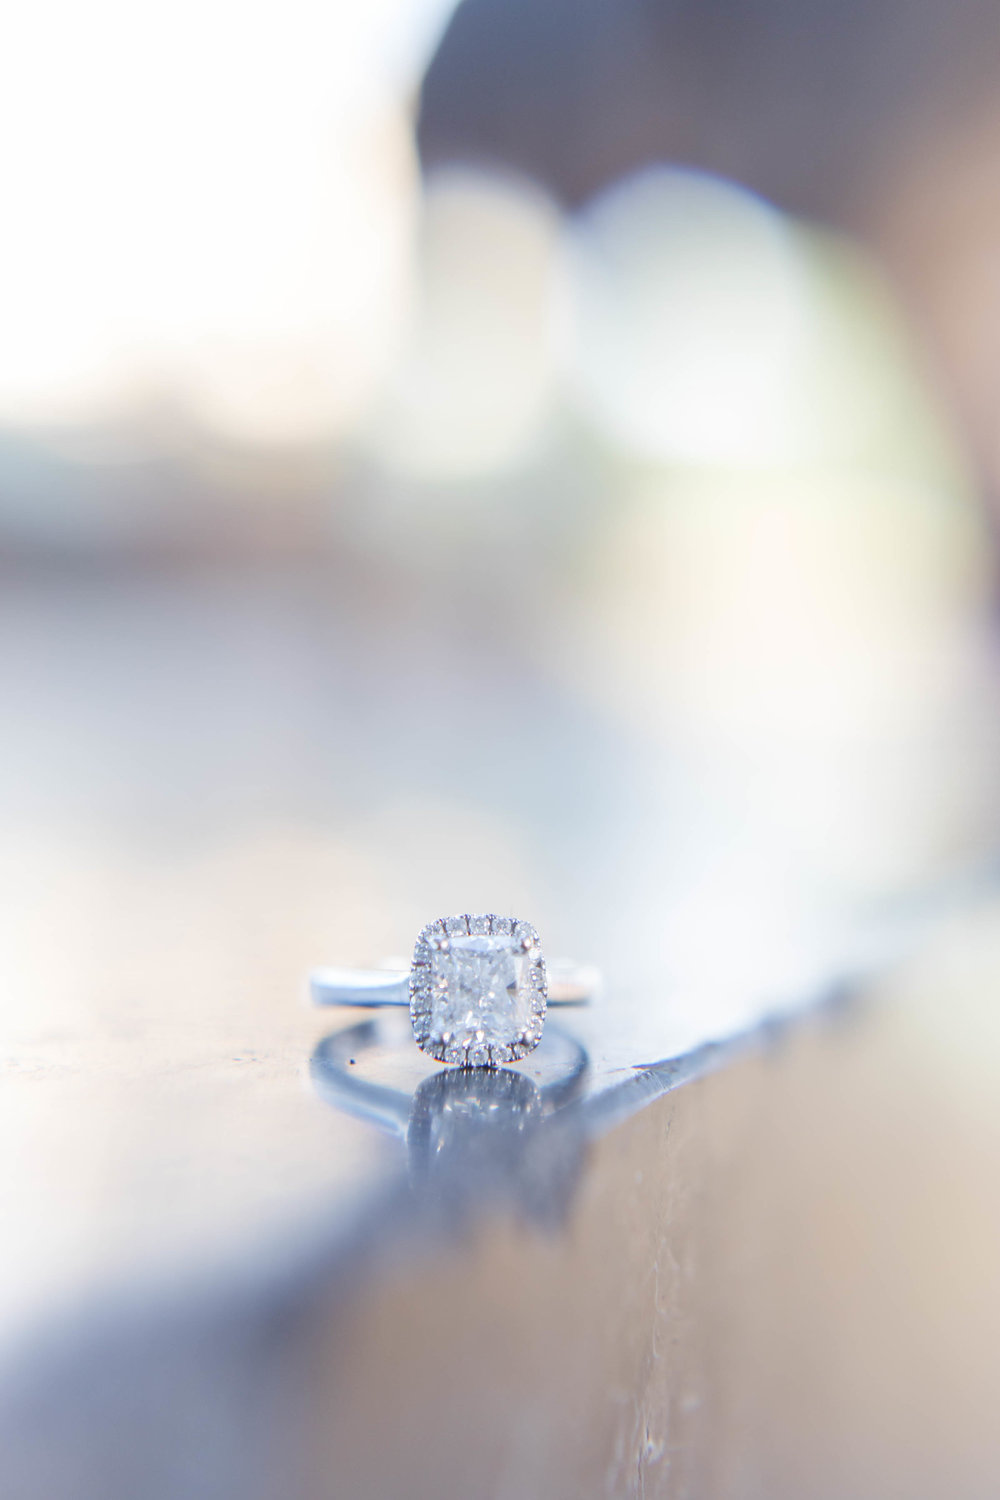 Engagement Ring | Richmond VA Wedding Photographer - MJ Mendoza